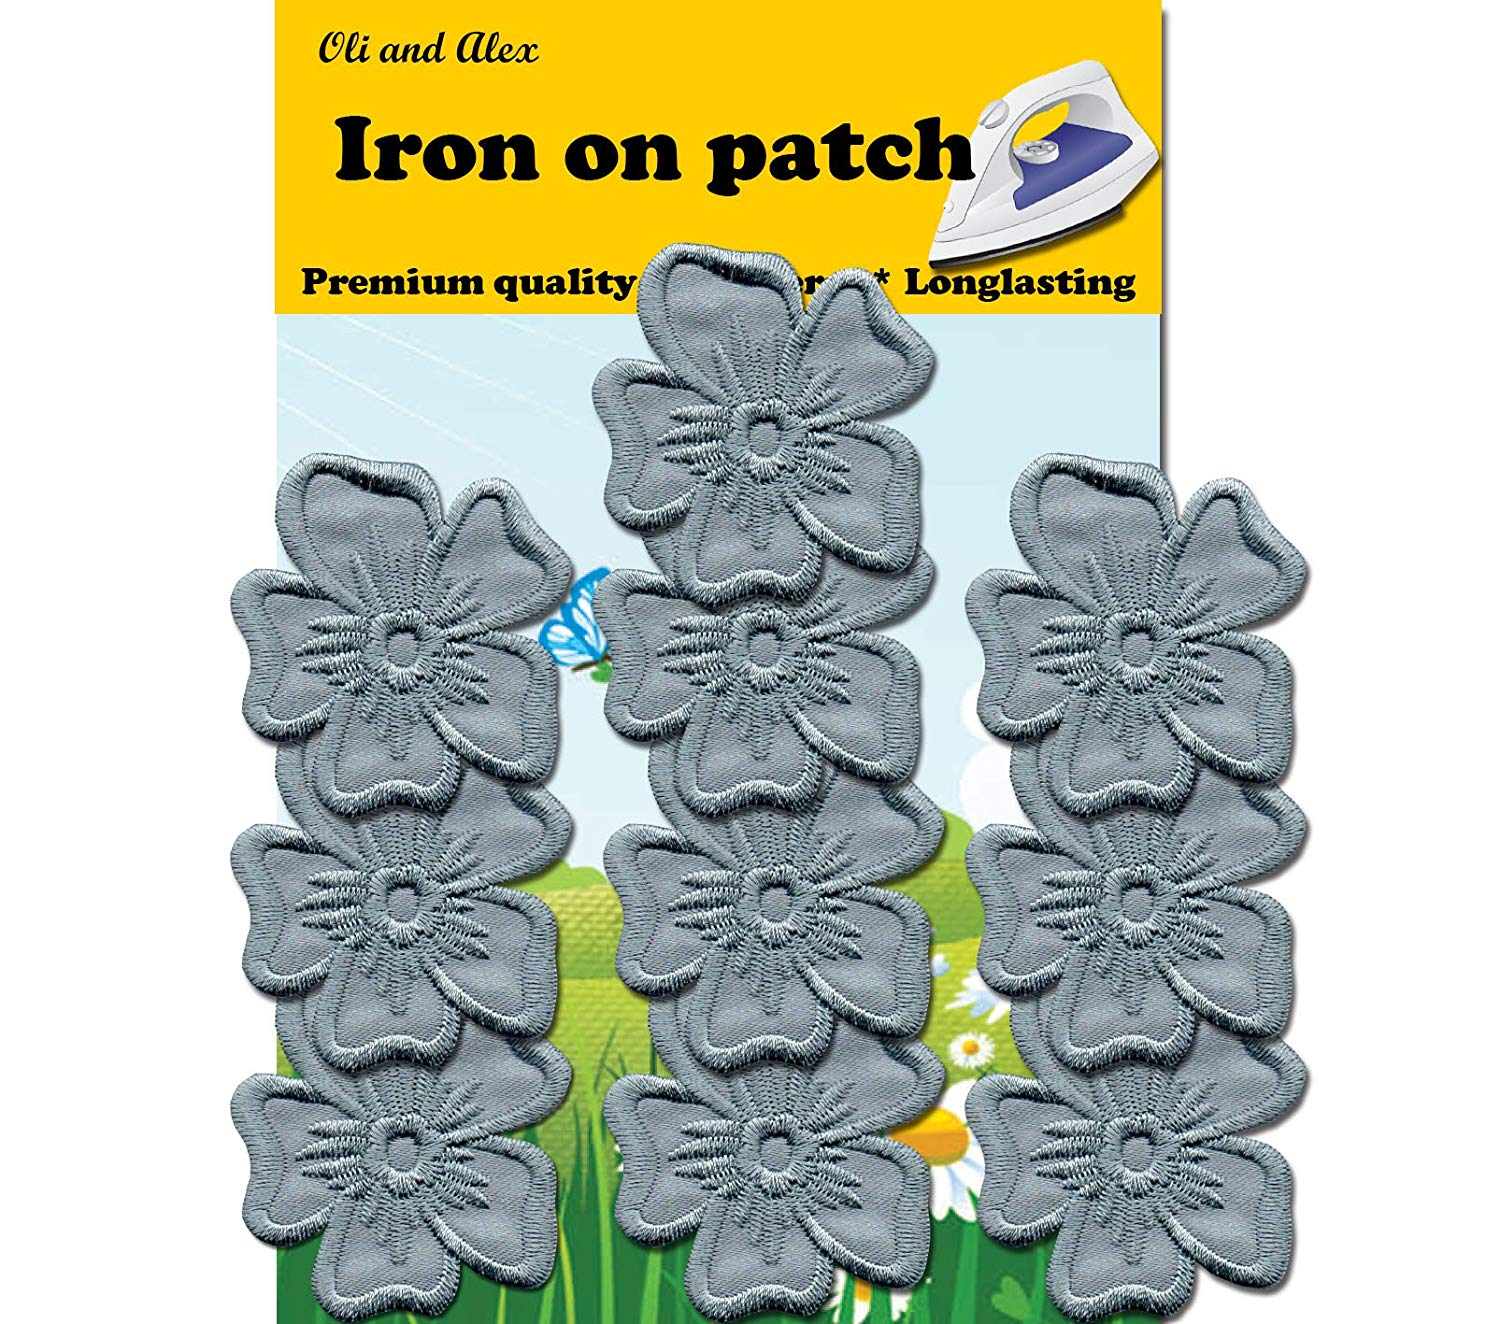 Iron on Patches - Gray Flower Iron On Patch 10 Pieces Embroidered Decorative Patches Fashion Set Approx. 1.89 x 1.96 inches (4.7 x 5.0cm) A-162